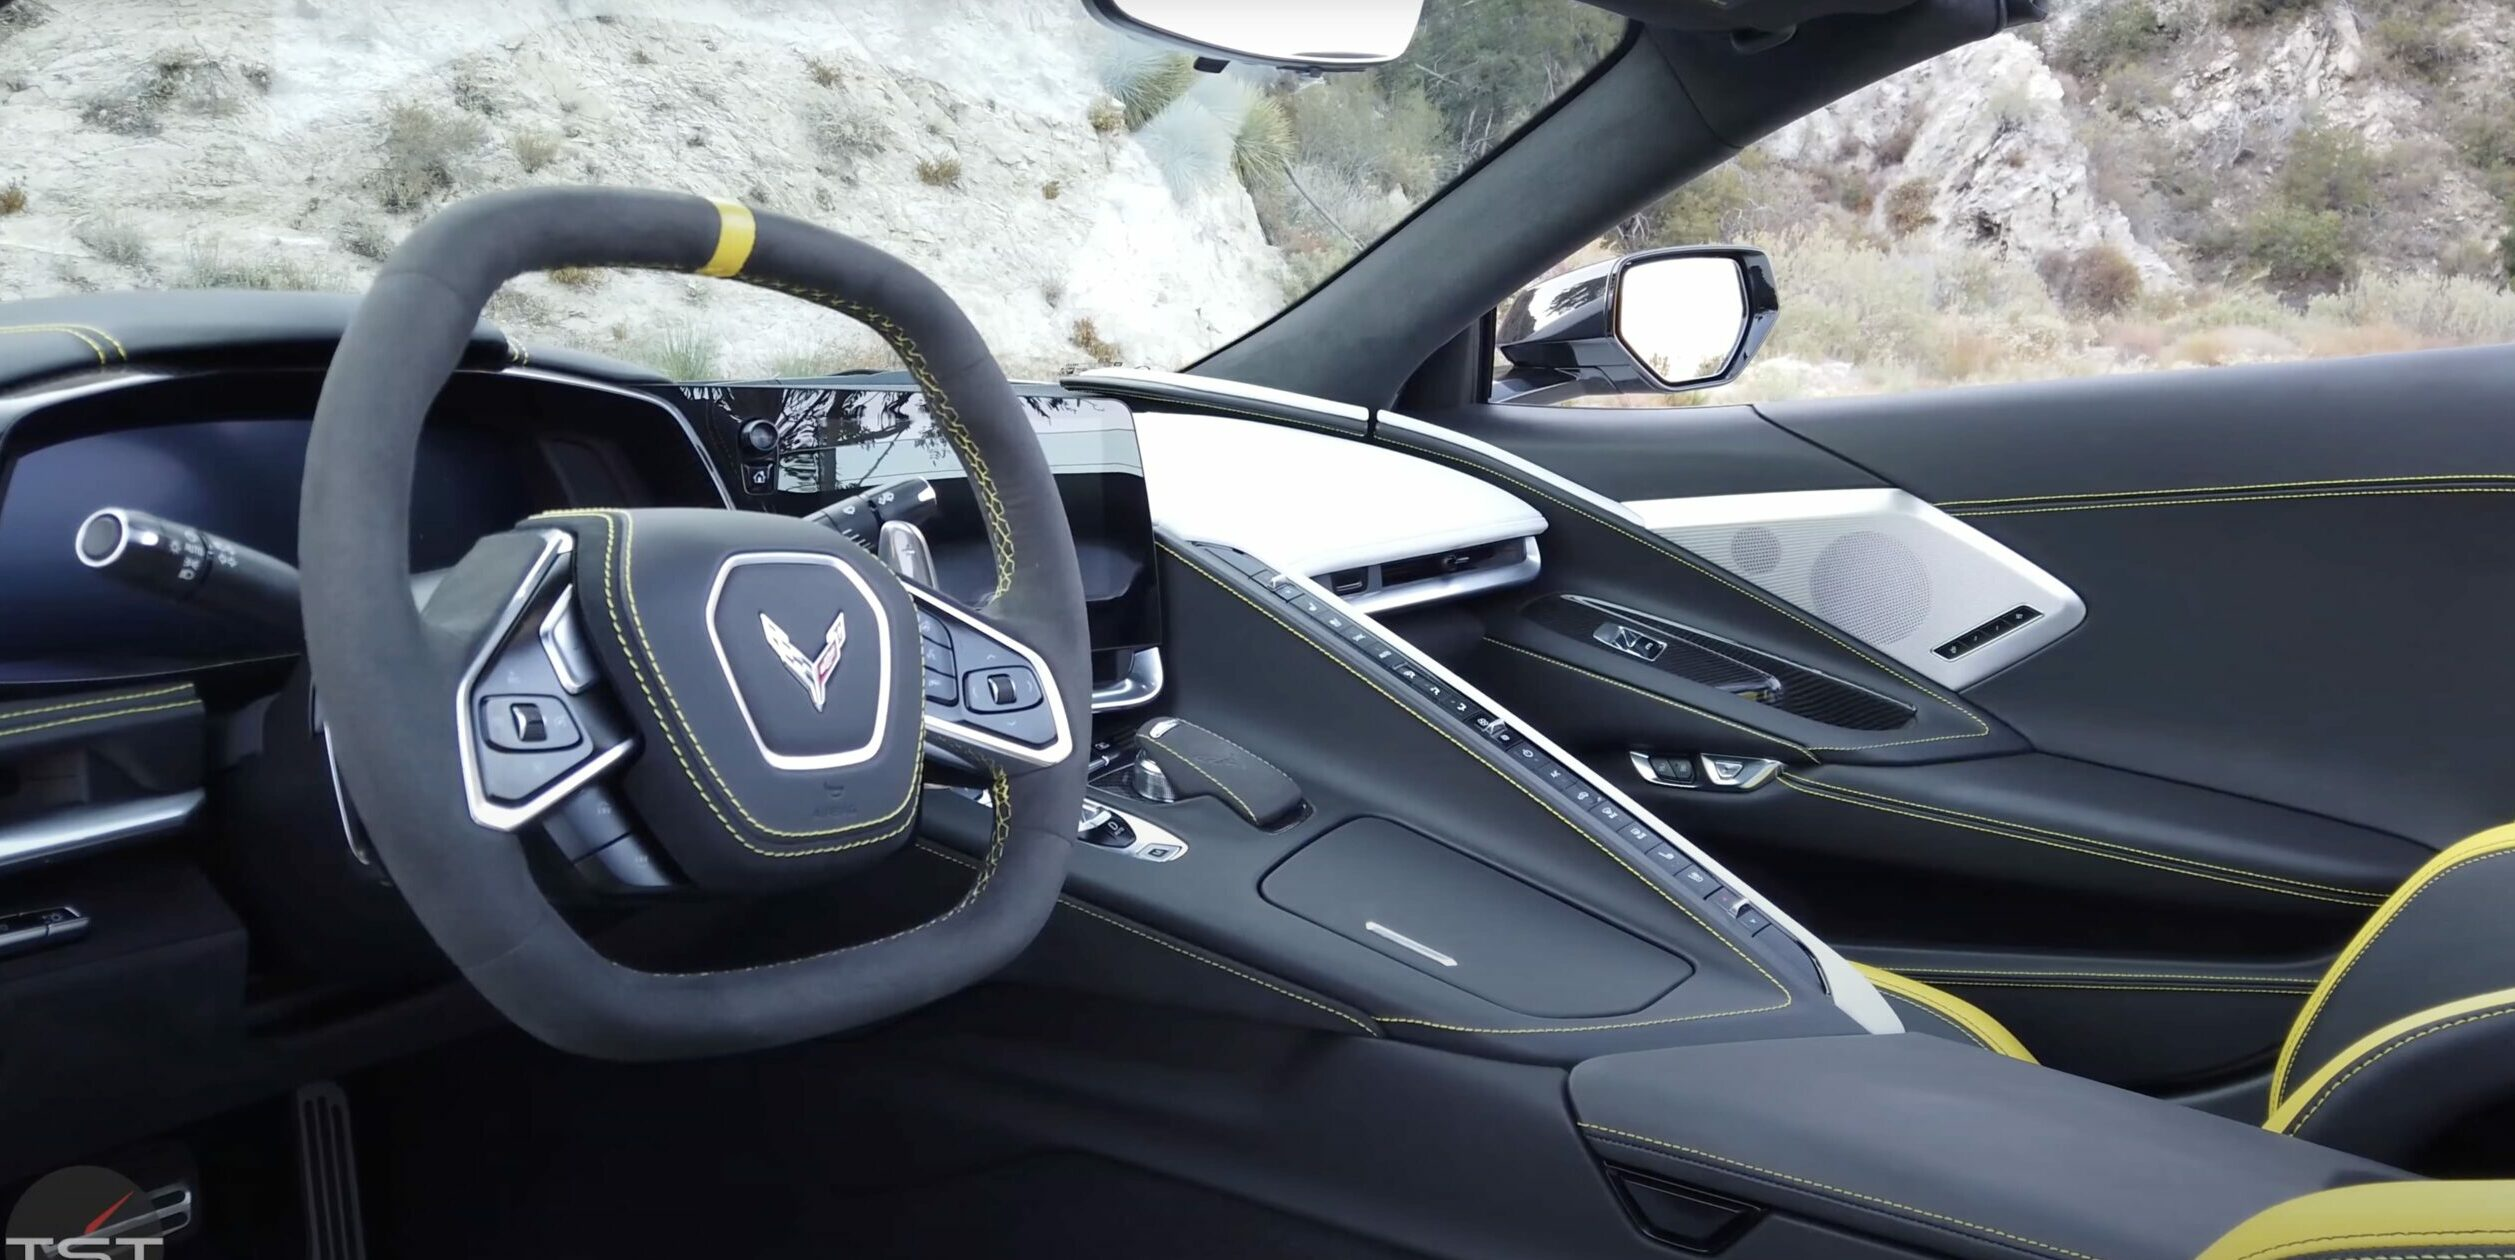 a view of the driver's side of the 2021 C8 Stingray Corvette 3LT